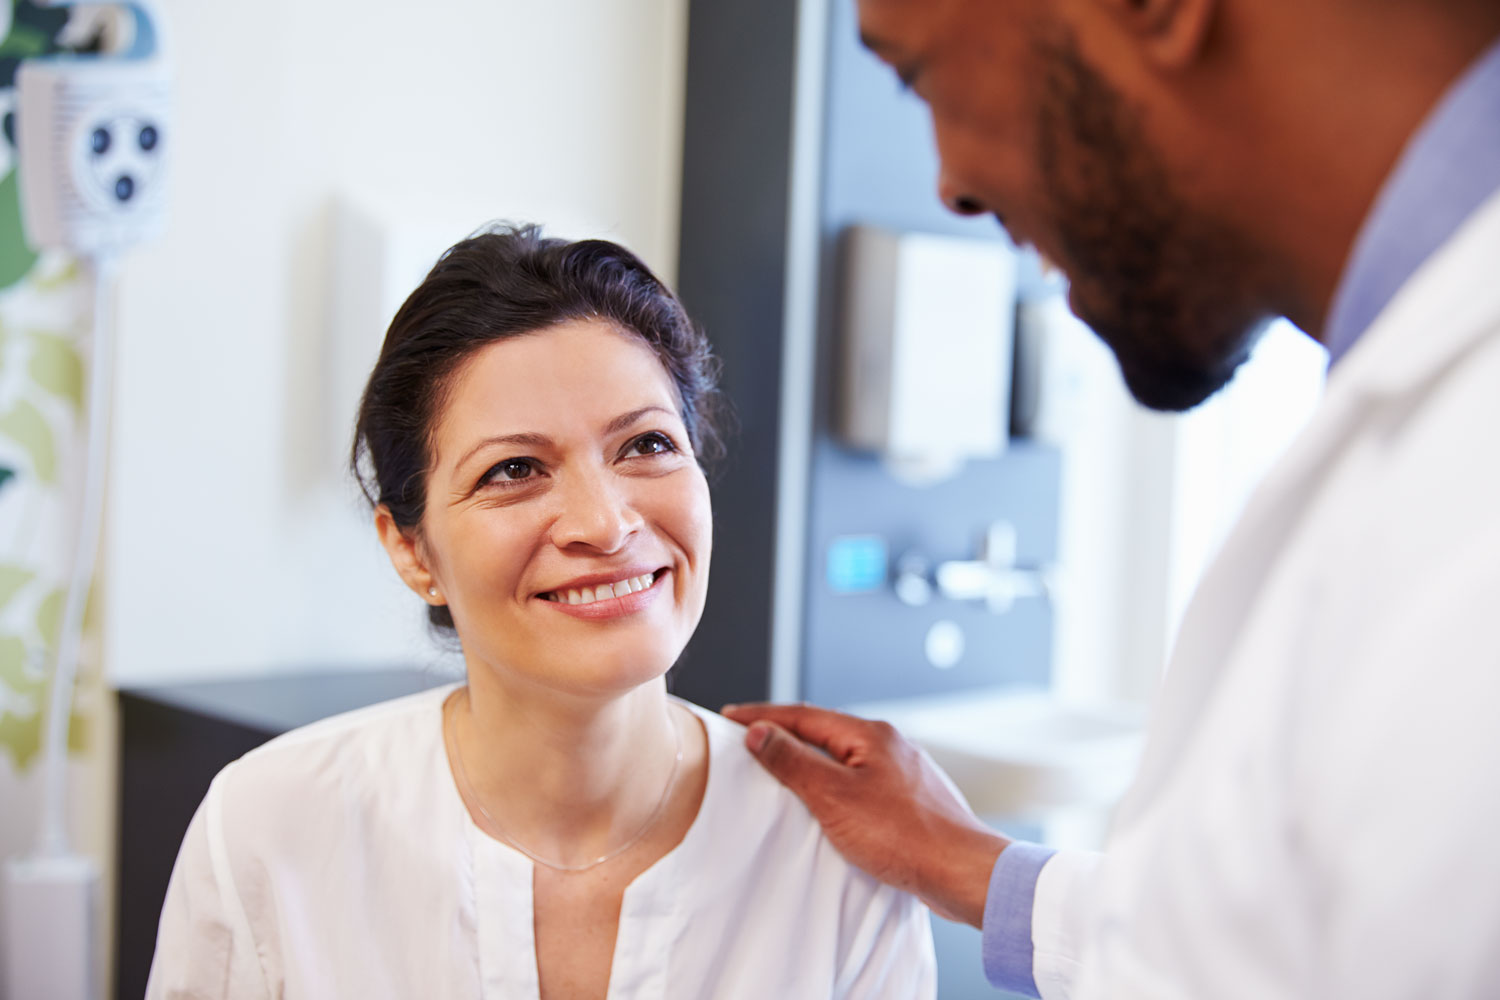 Patient and doctor reviewing test results